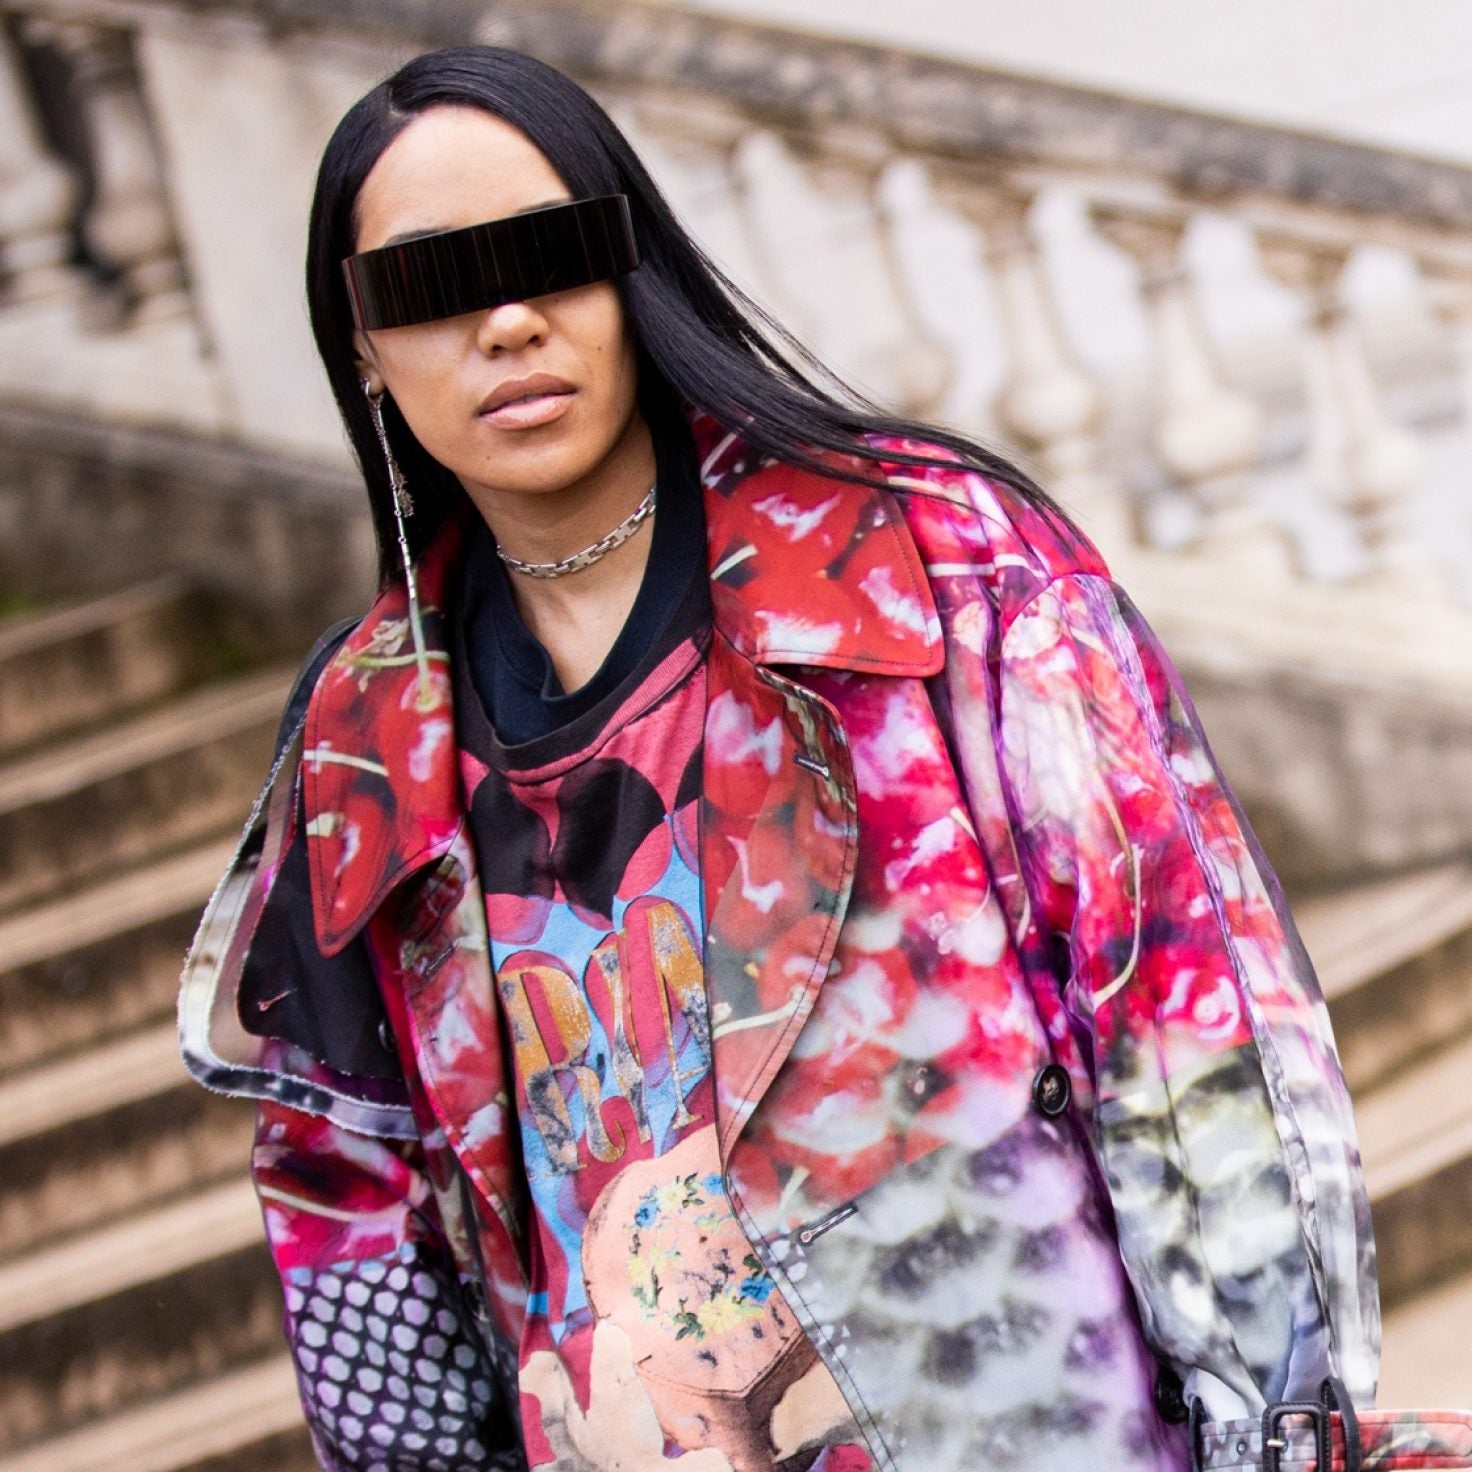 Our Favorite Street Style Moments In Europe This Fashion Month